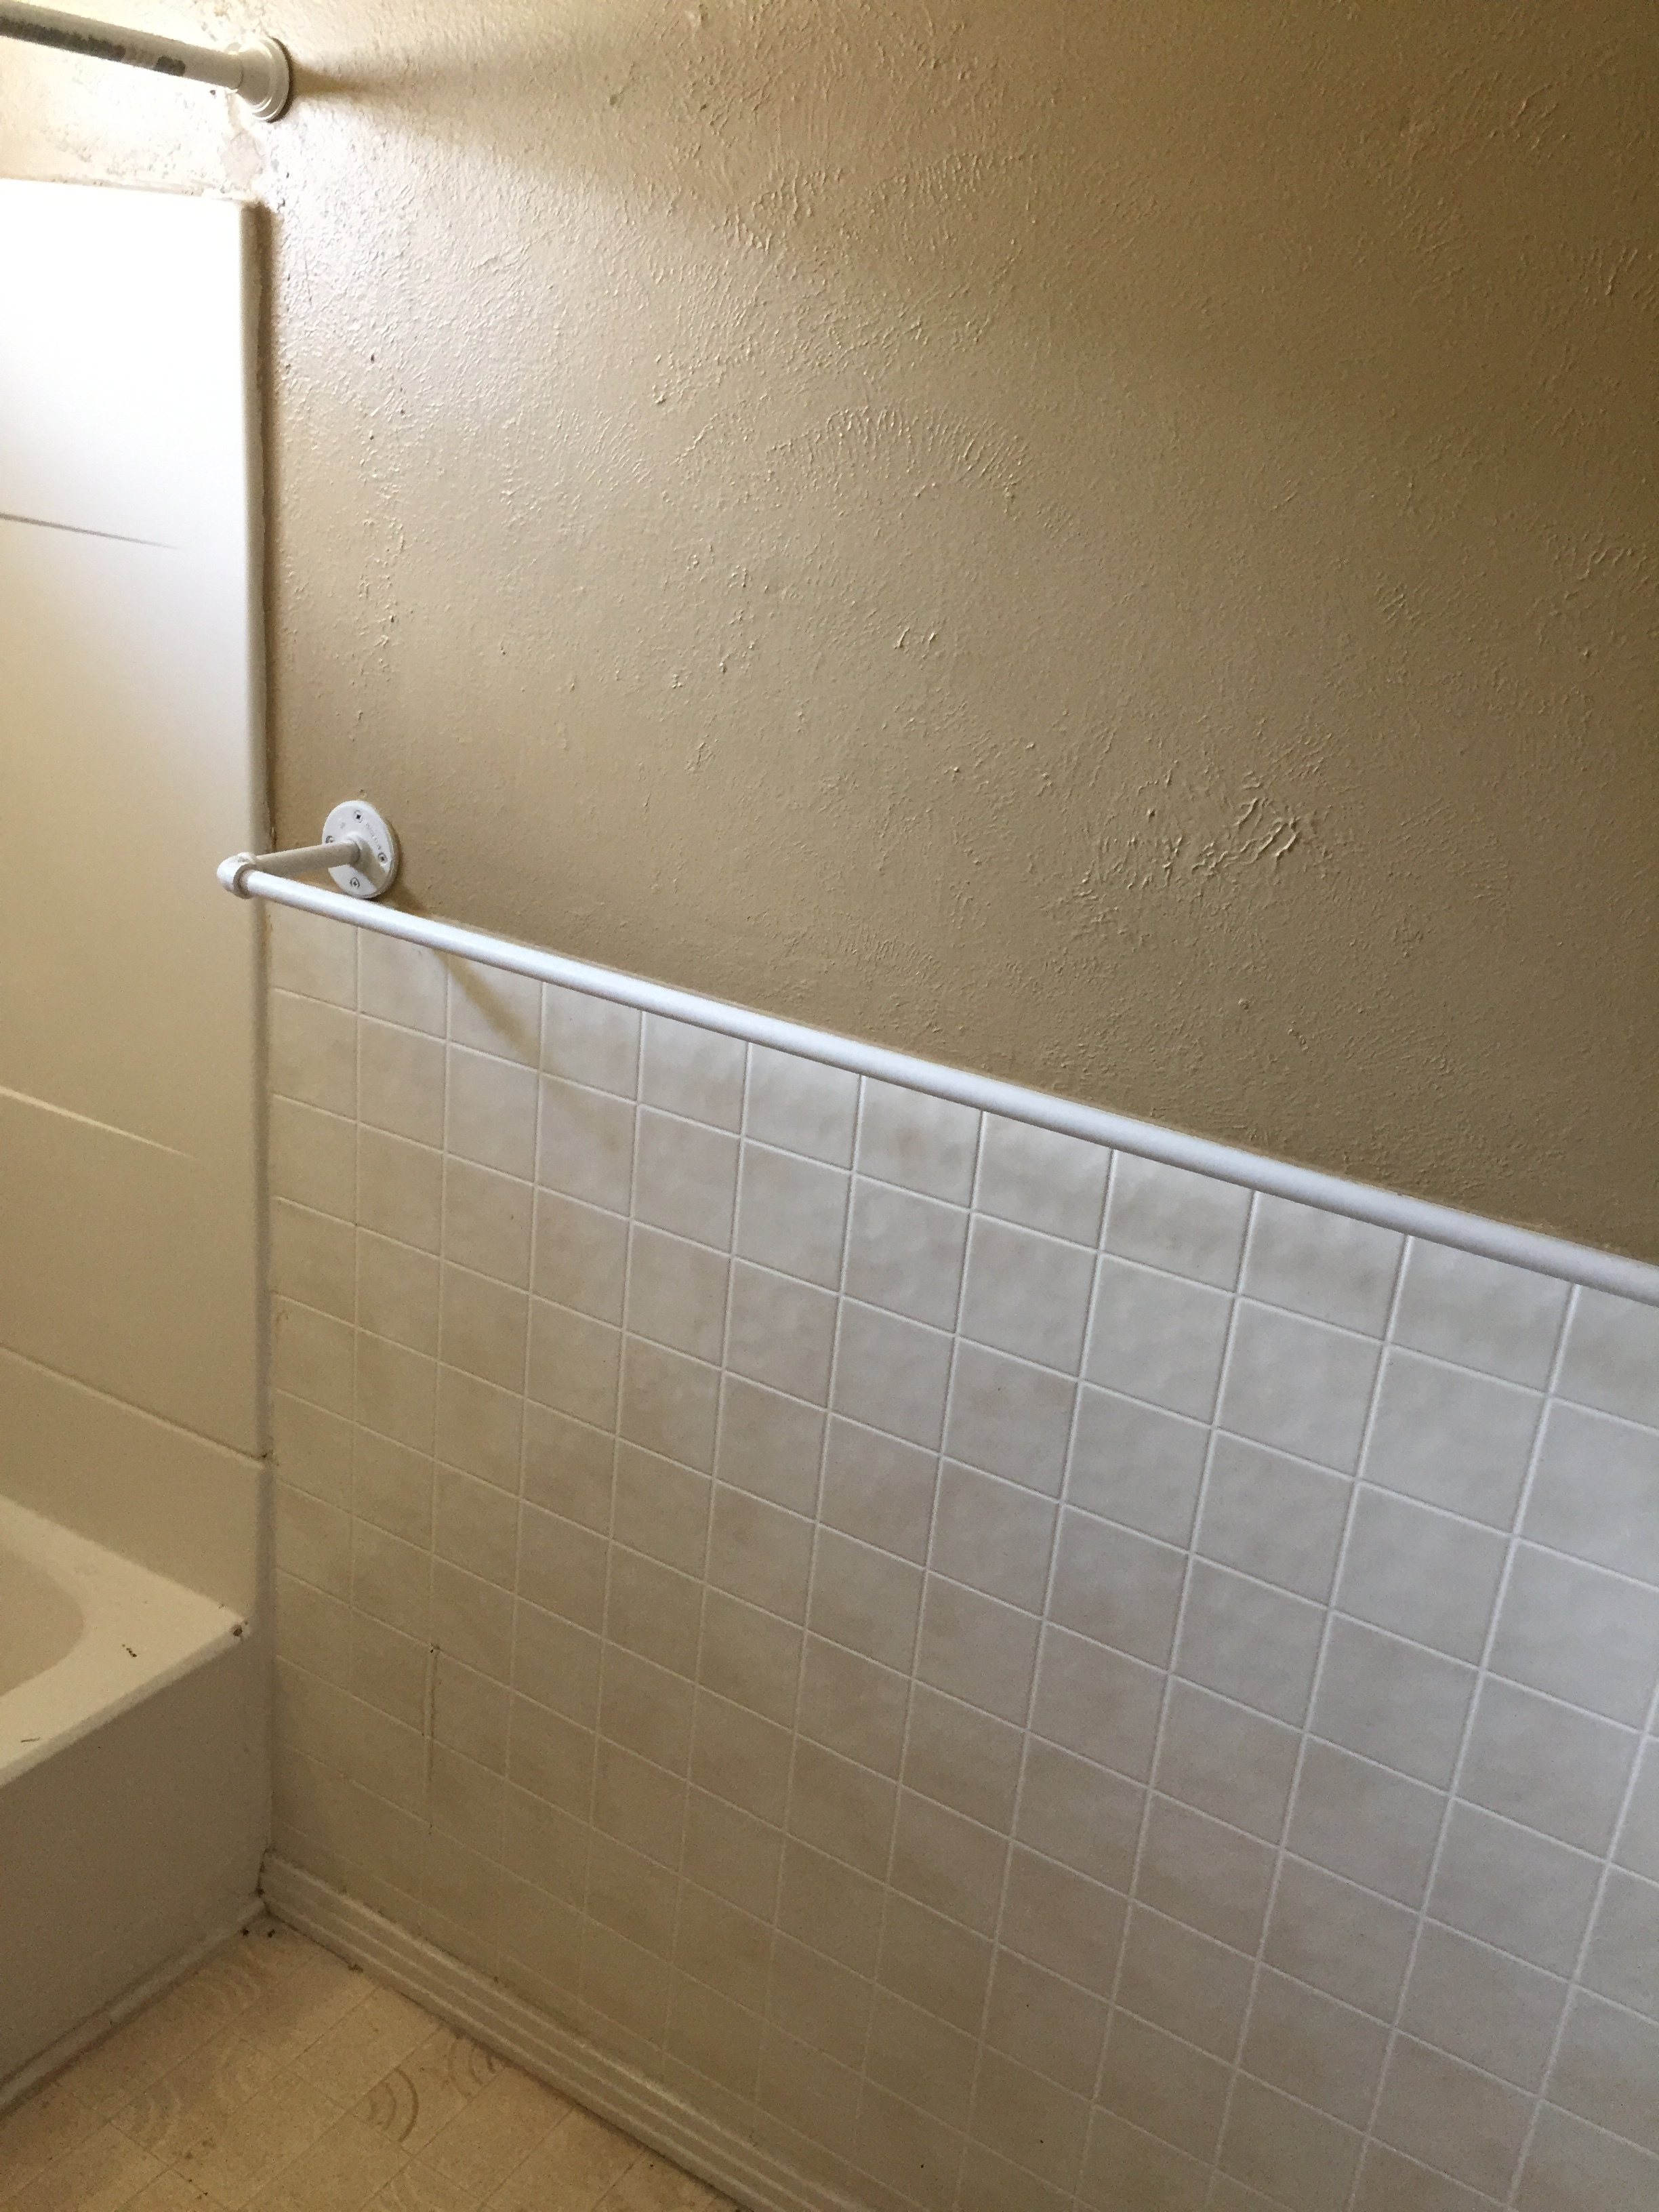 South wall of the bathroom on the day of possession.